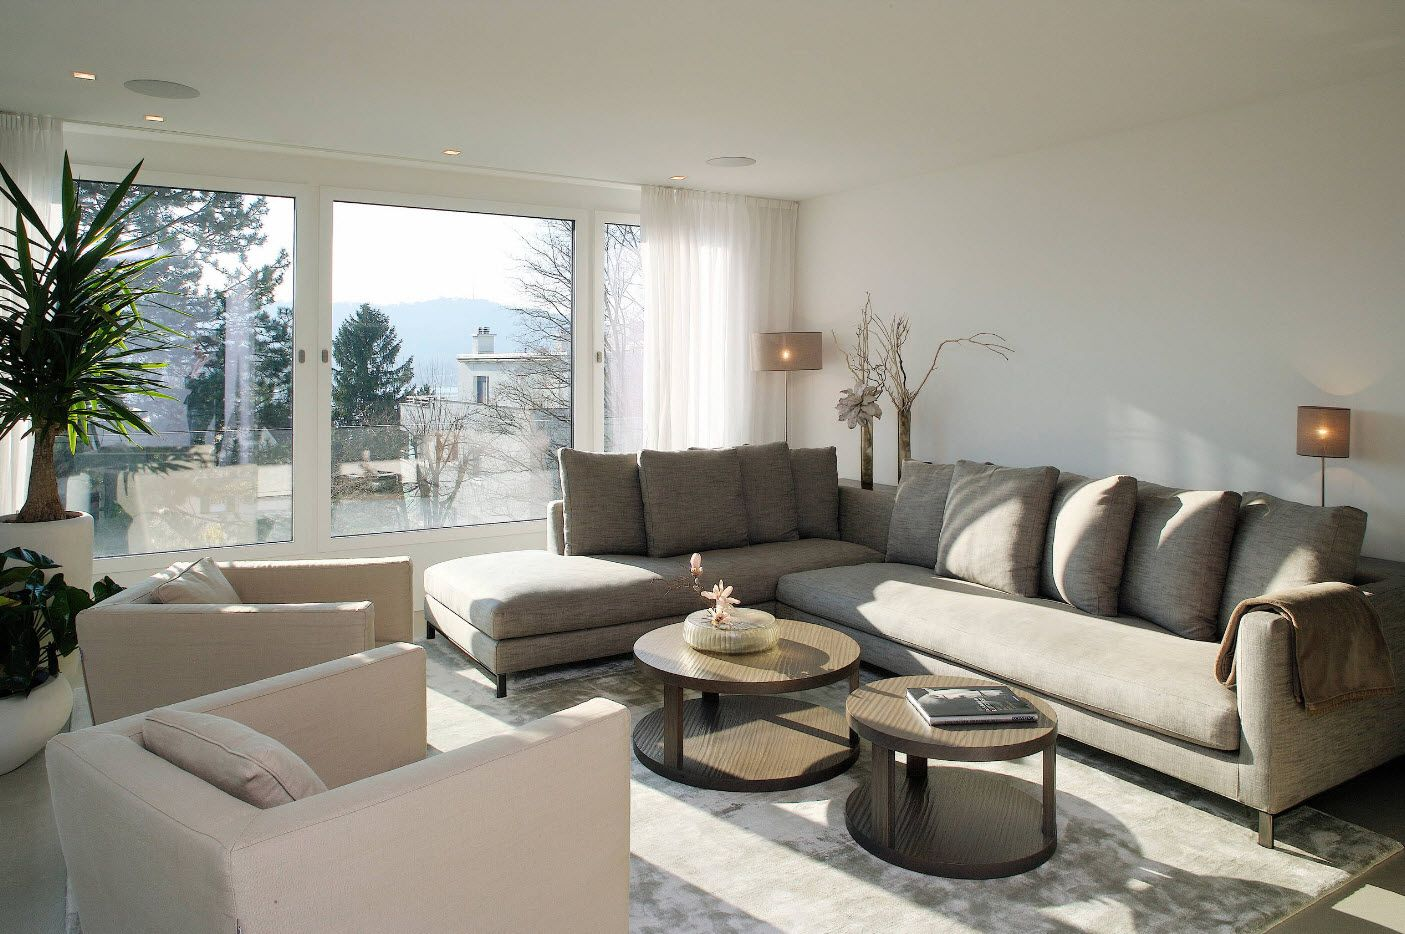 Gray idyll in the spacious Classic styled interior